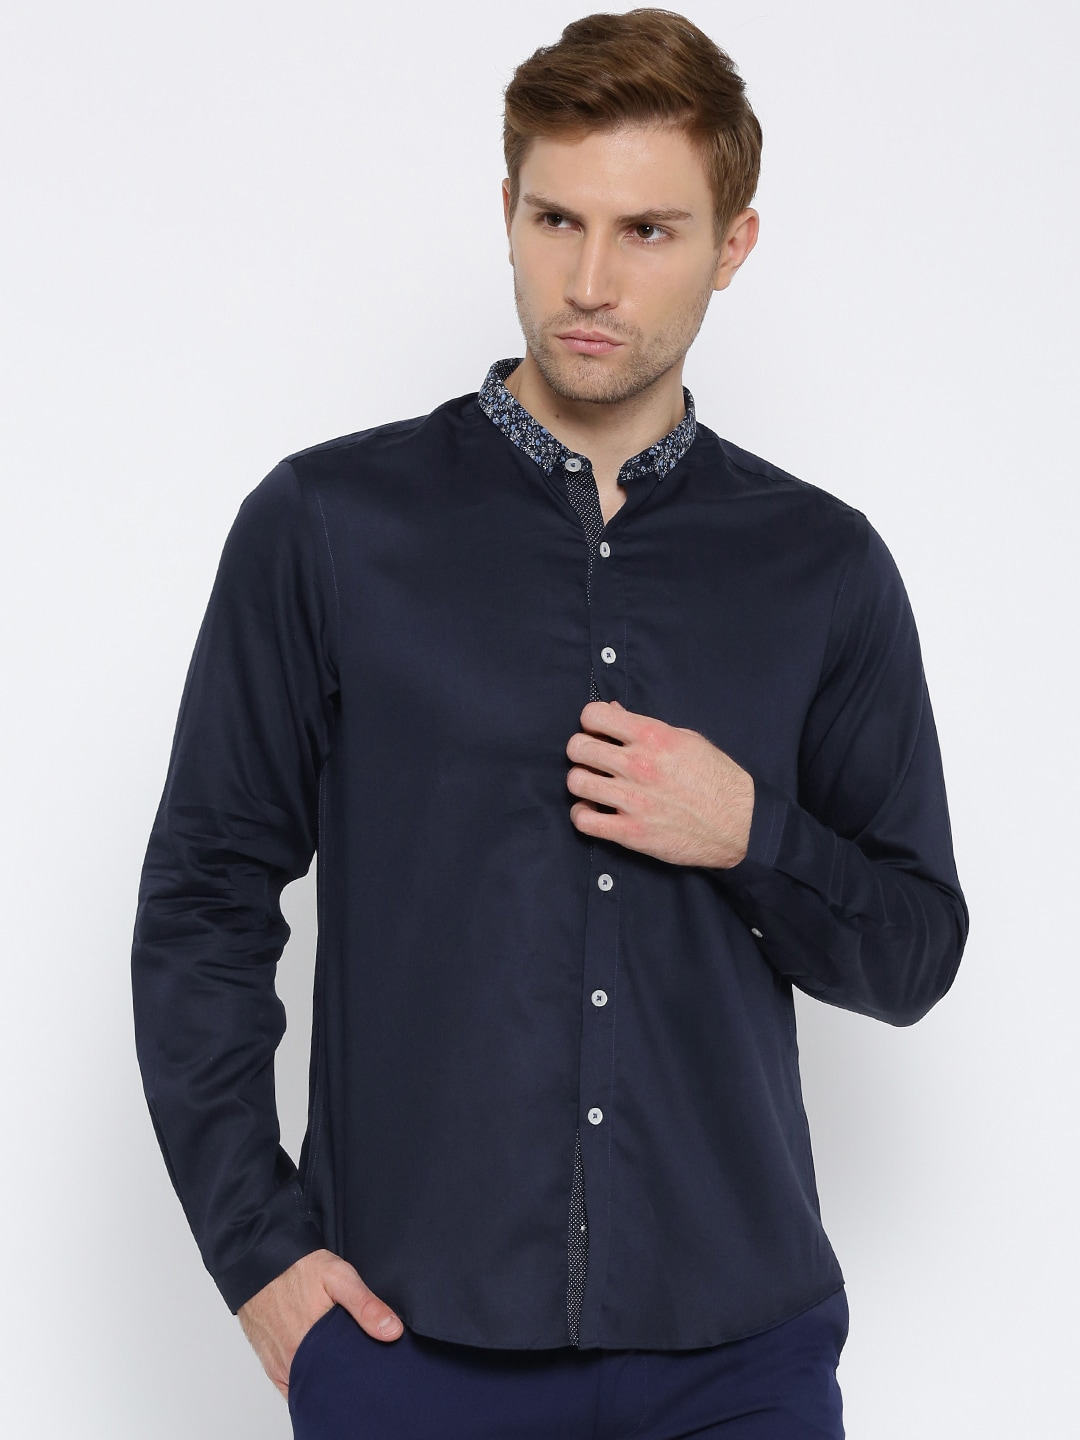 Party Shirts for Men - Buy Men\u0027s Party Shirts Online | Myntra